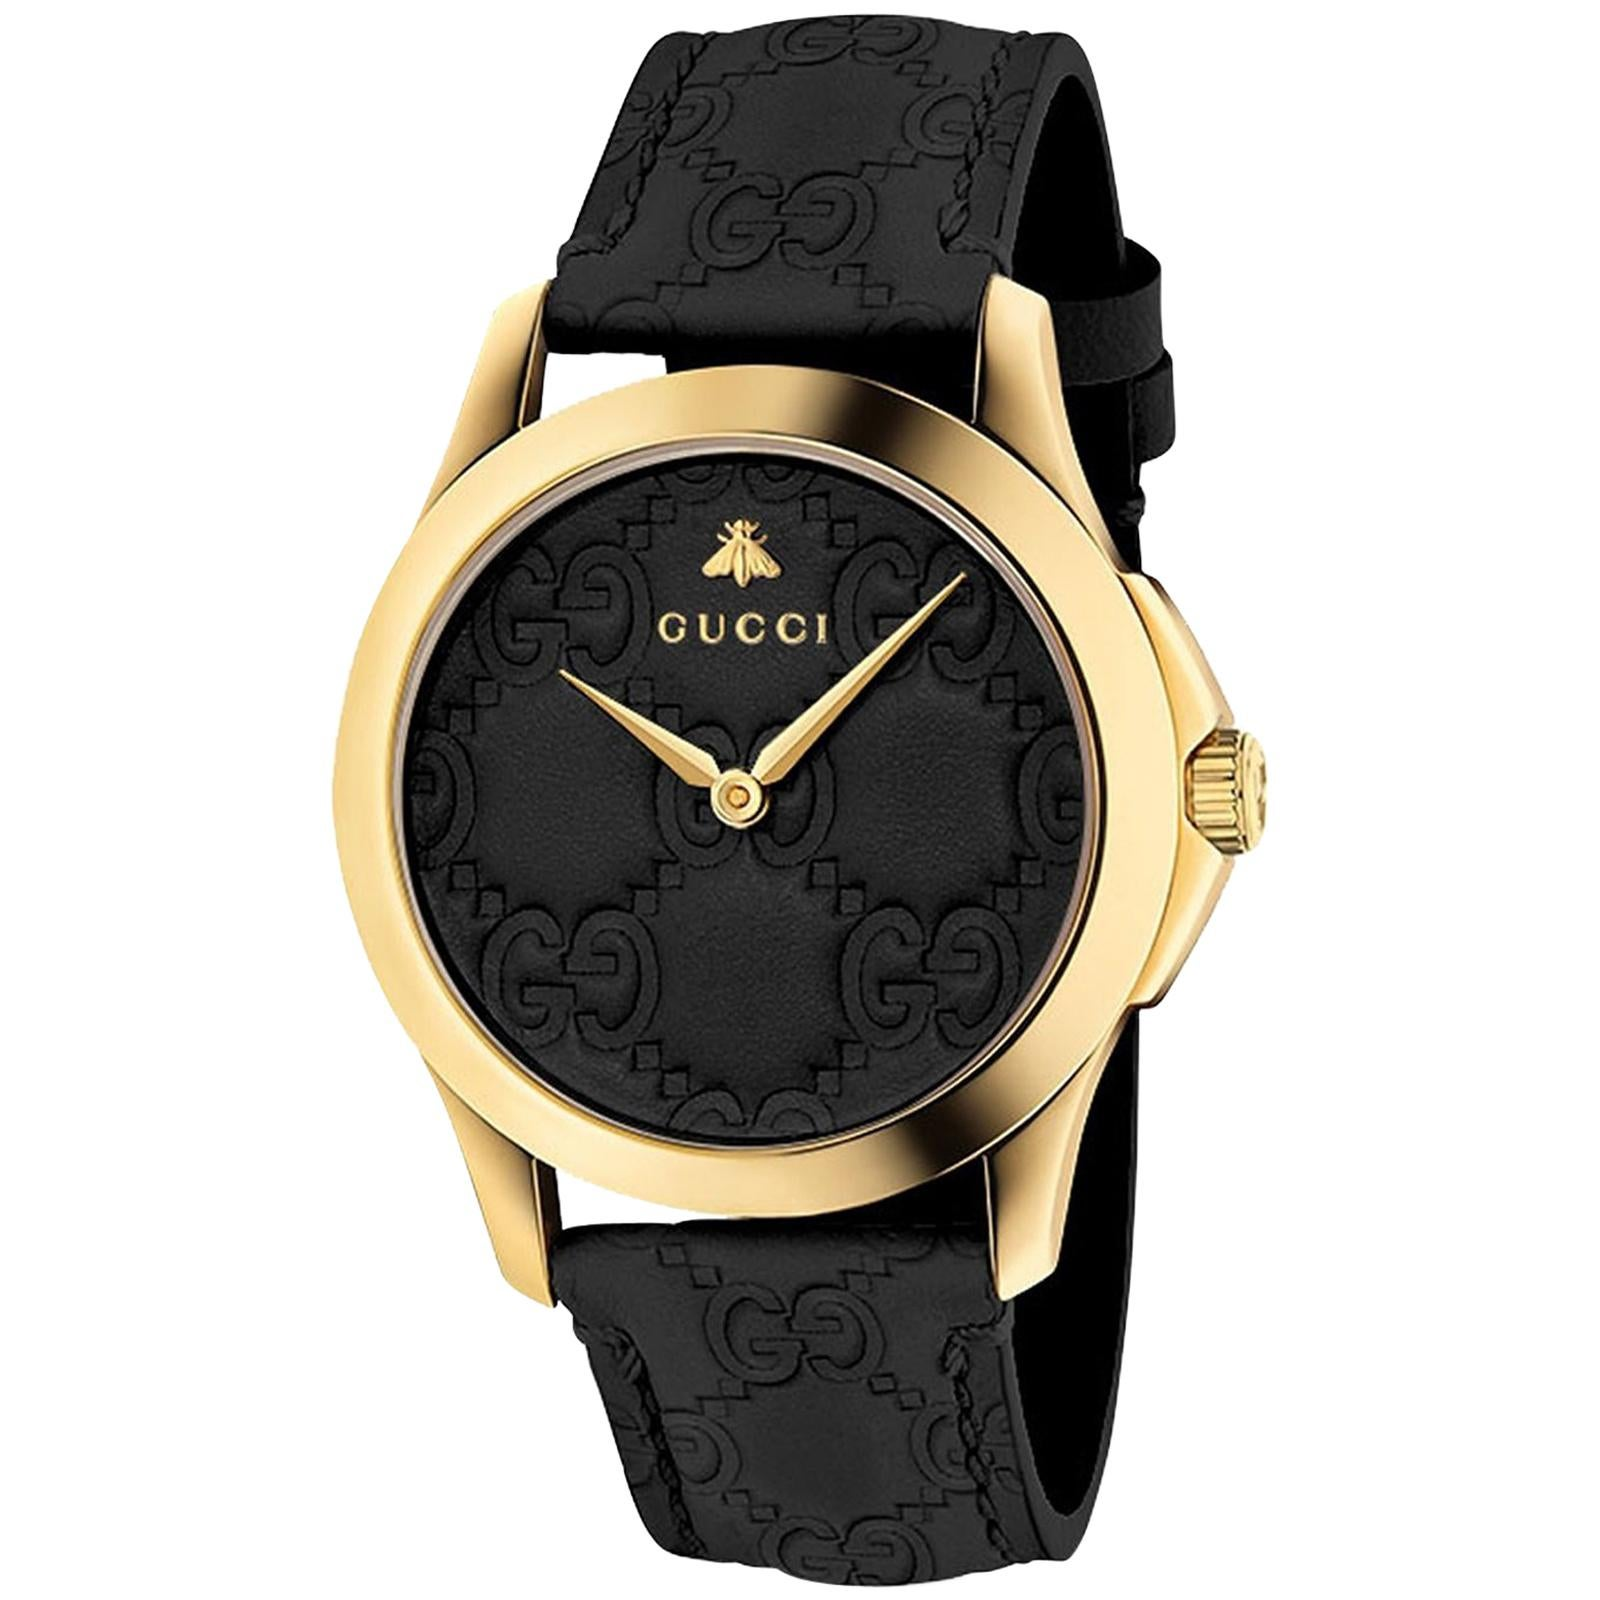 d08498bc970 Gucci GG2570 Black Dial Rose Gold-Tone Men s Watch Item No. YA142309 For  Sale at 1stdibs